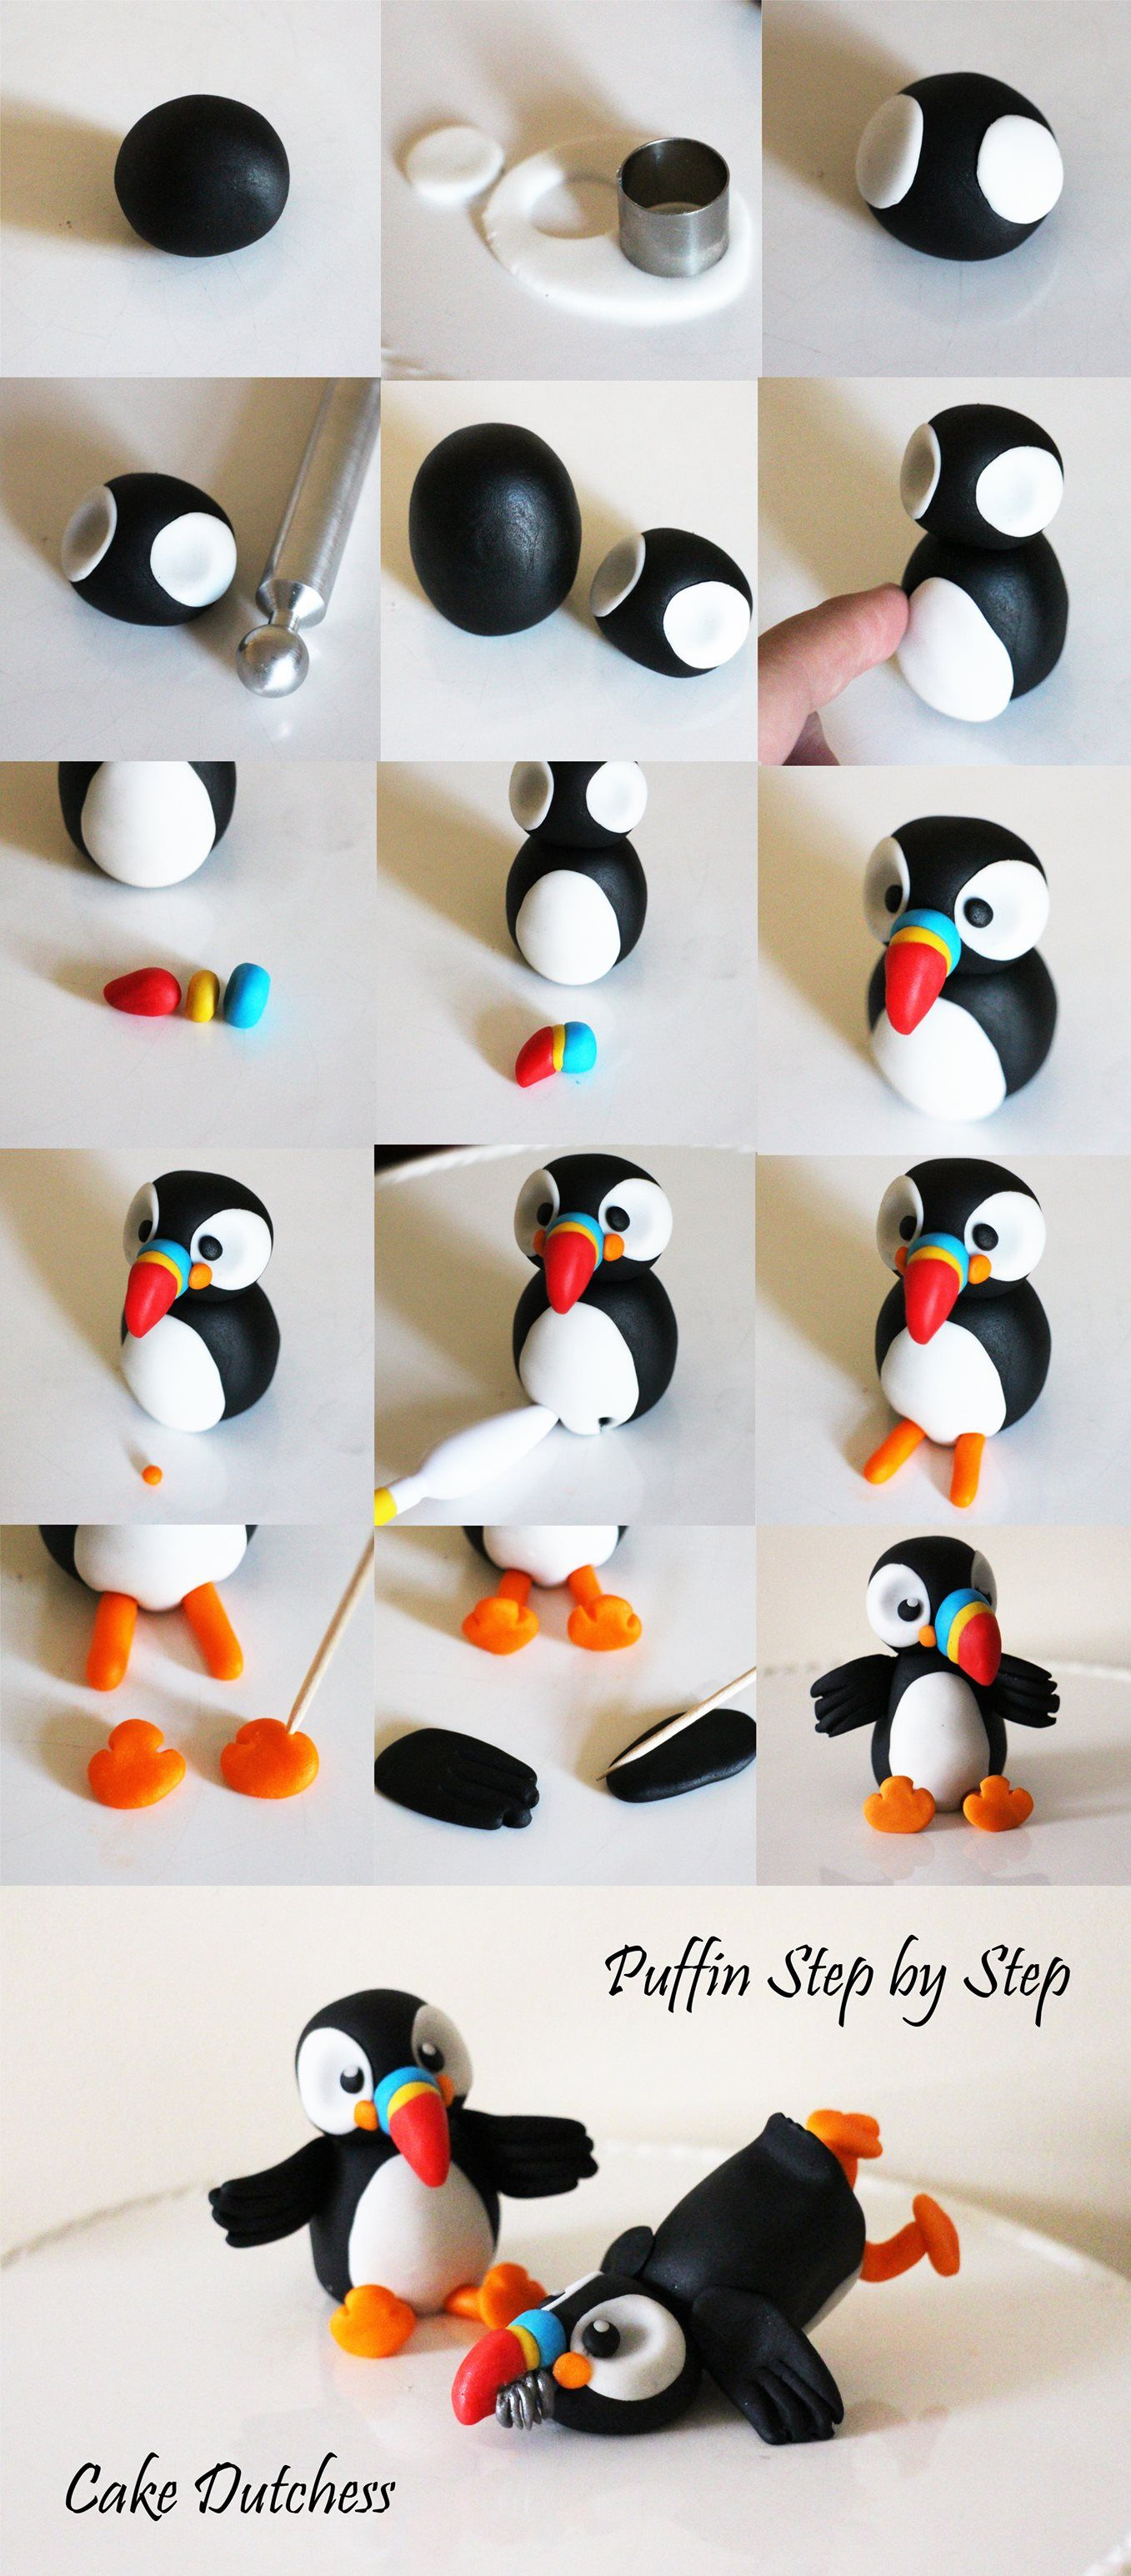 Cake Decorating Ideas Step By Step : Puffin step by step by Cake Dutchess Baking, Fondant ...